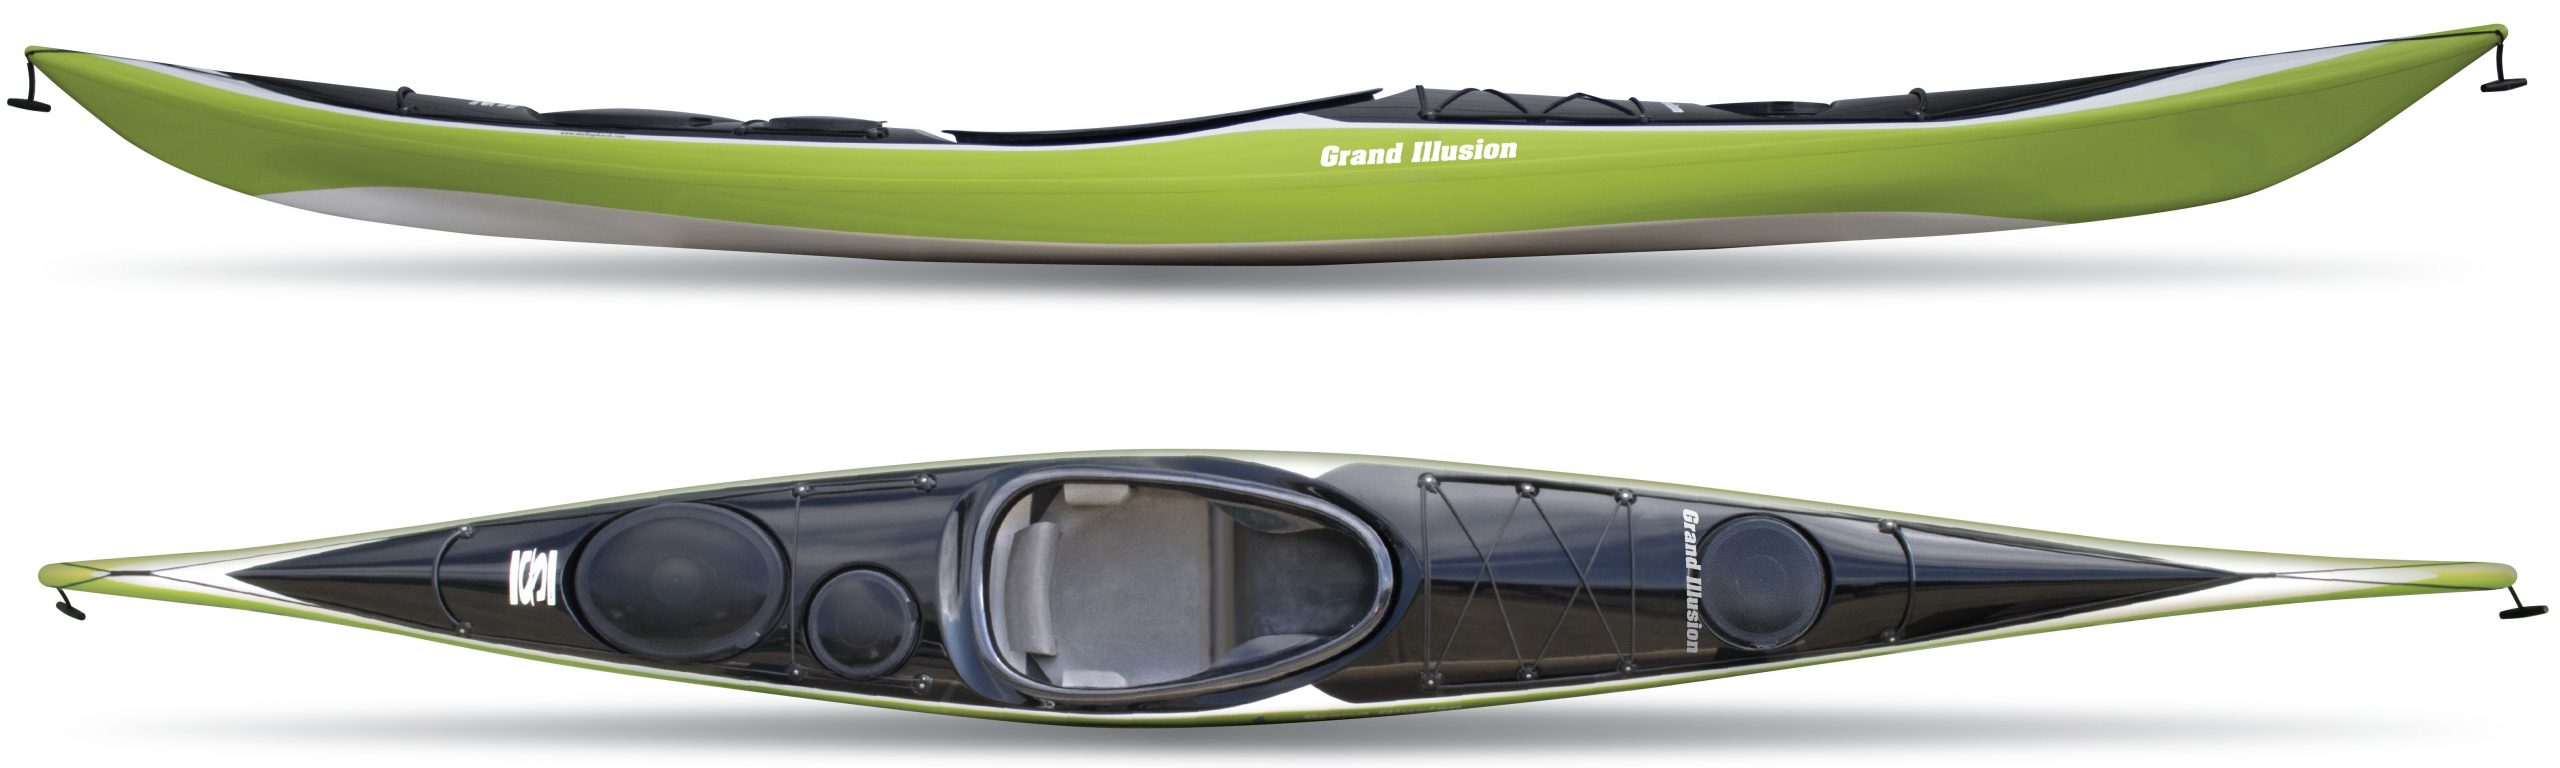 Grand Illusion Pure Performance Kayaks